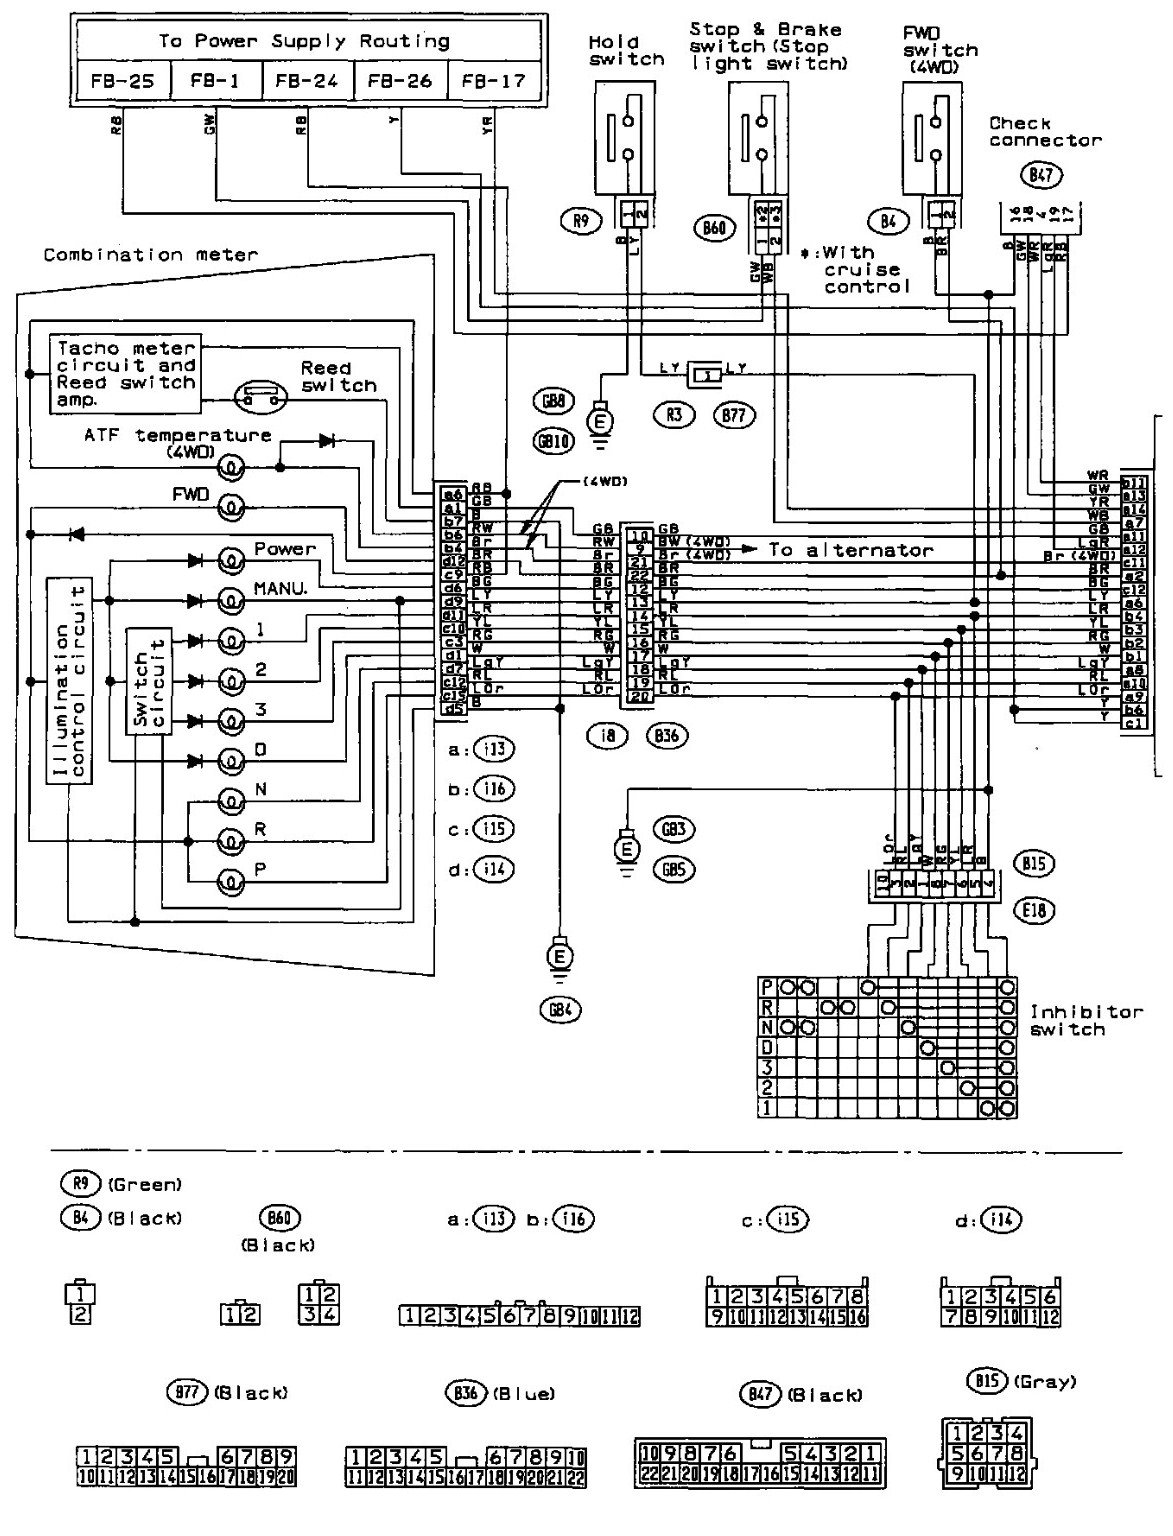 subaru wiring diagram subaru image wiring diagram 1998 subaru legacy wiring diagram 1998 wiring diagrams on subaru wiring diagram